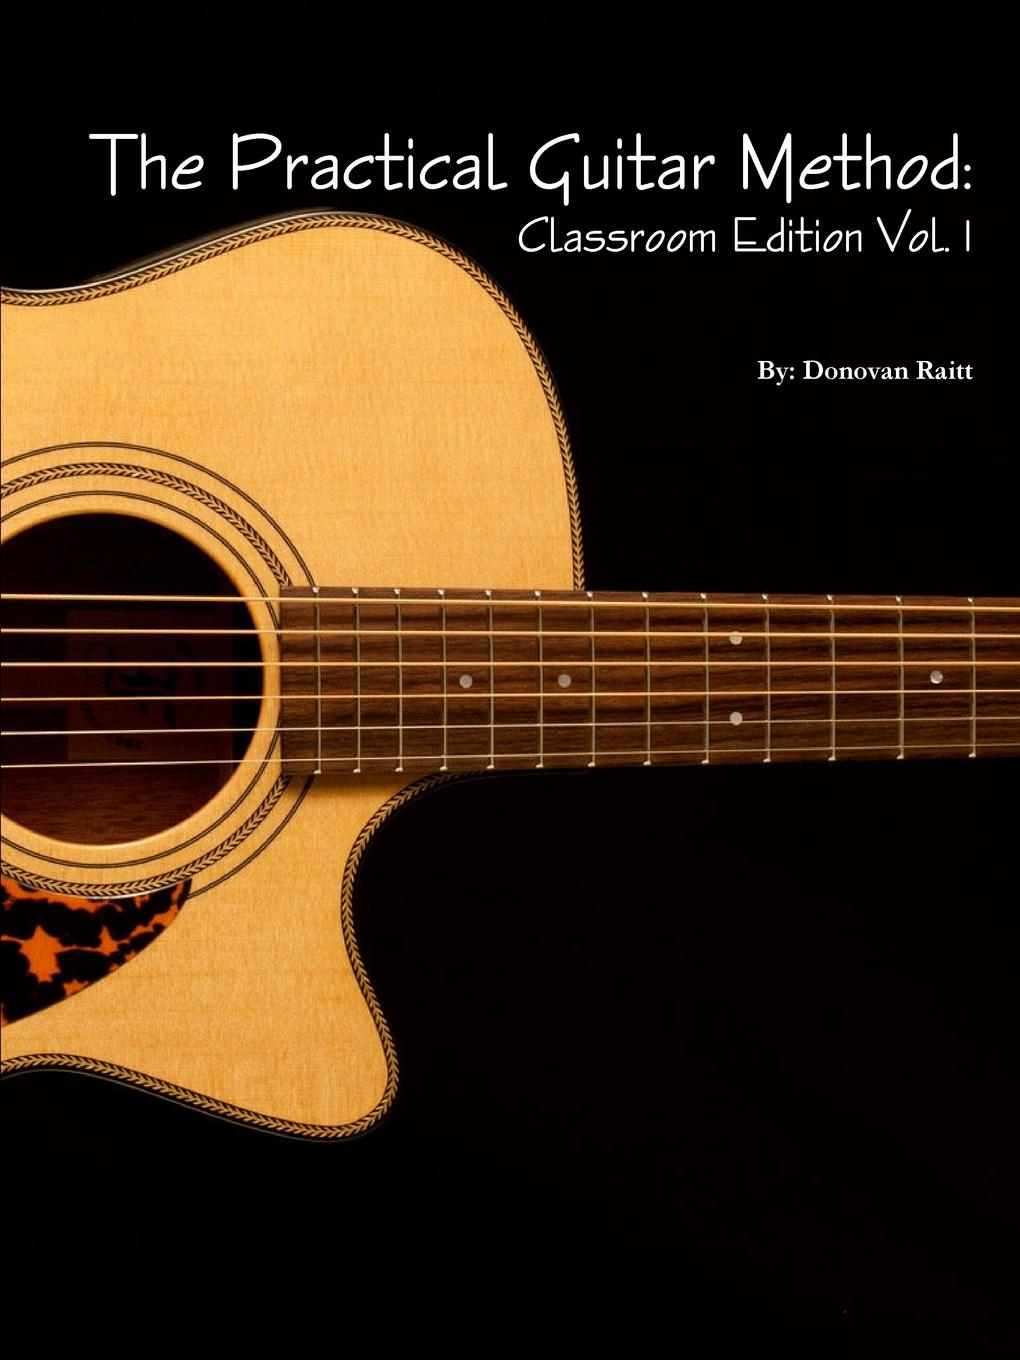 Donovan Raitt The Practical Guitar Method. Classroom Edition Vol.1 hot sale telecast electric guitar new style vintage sunburst color real pics tl guitar high quality free shipping in stock